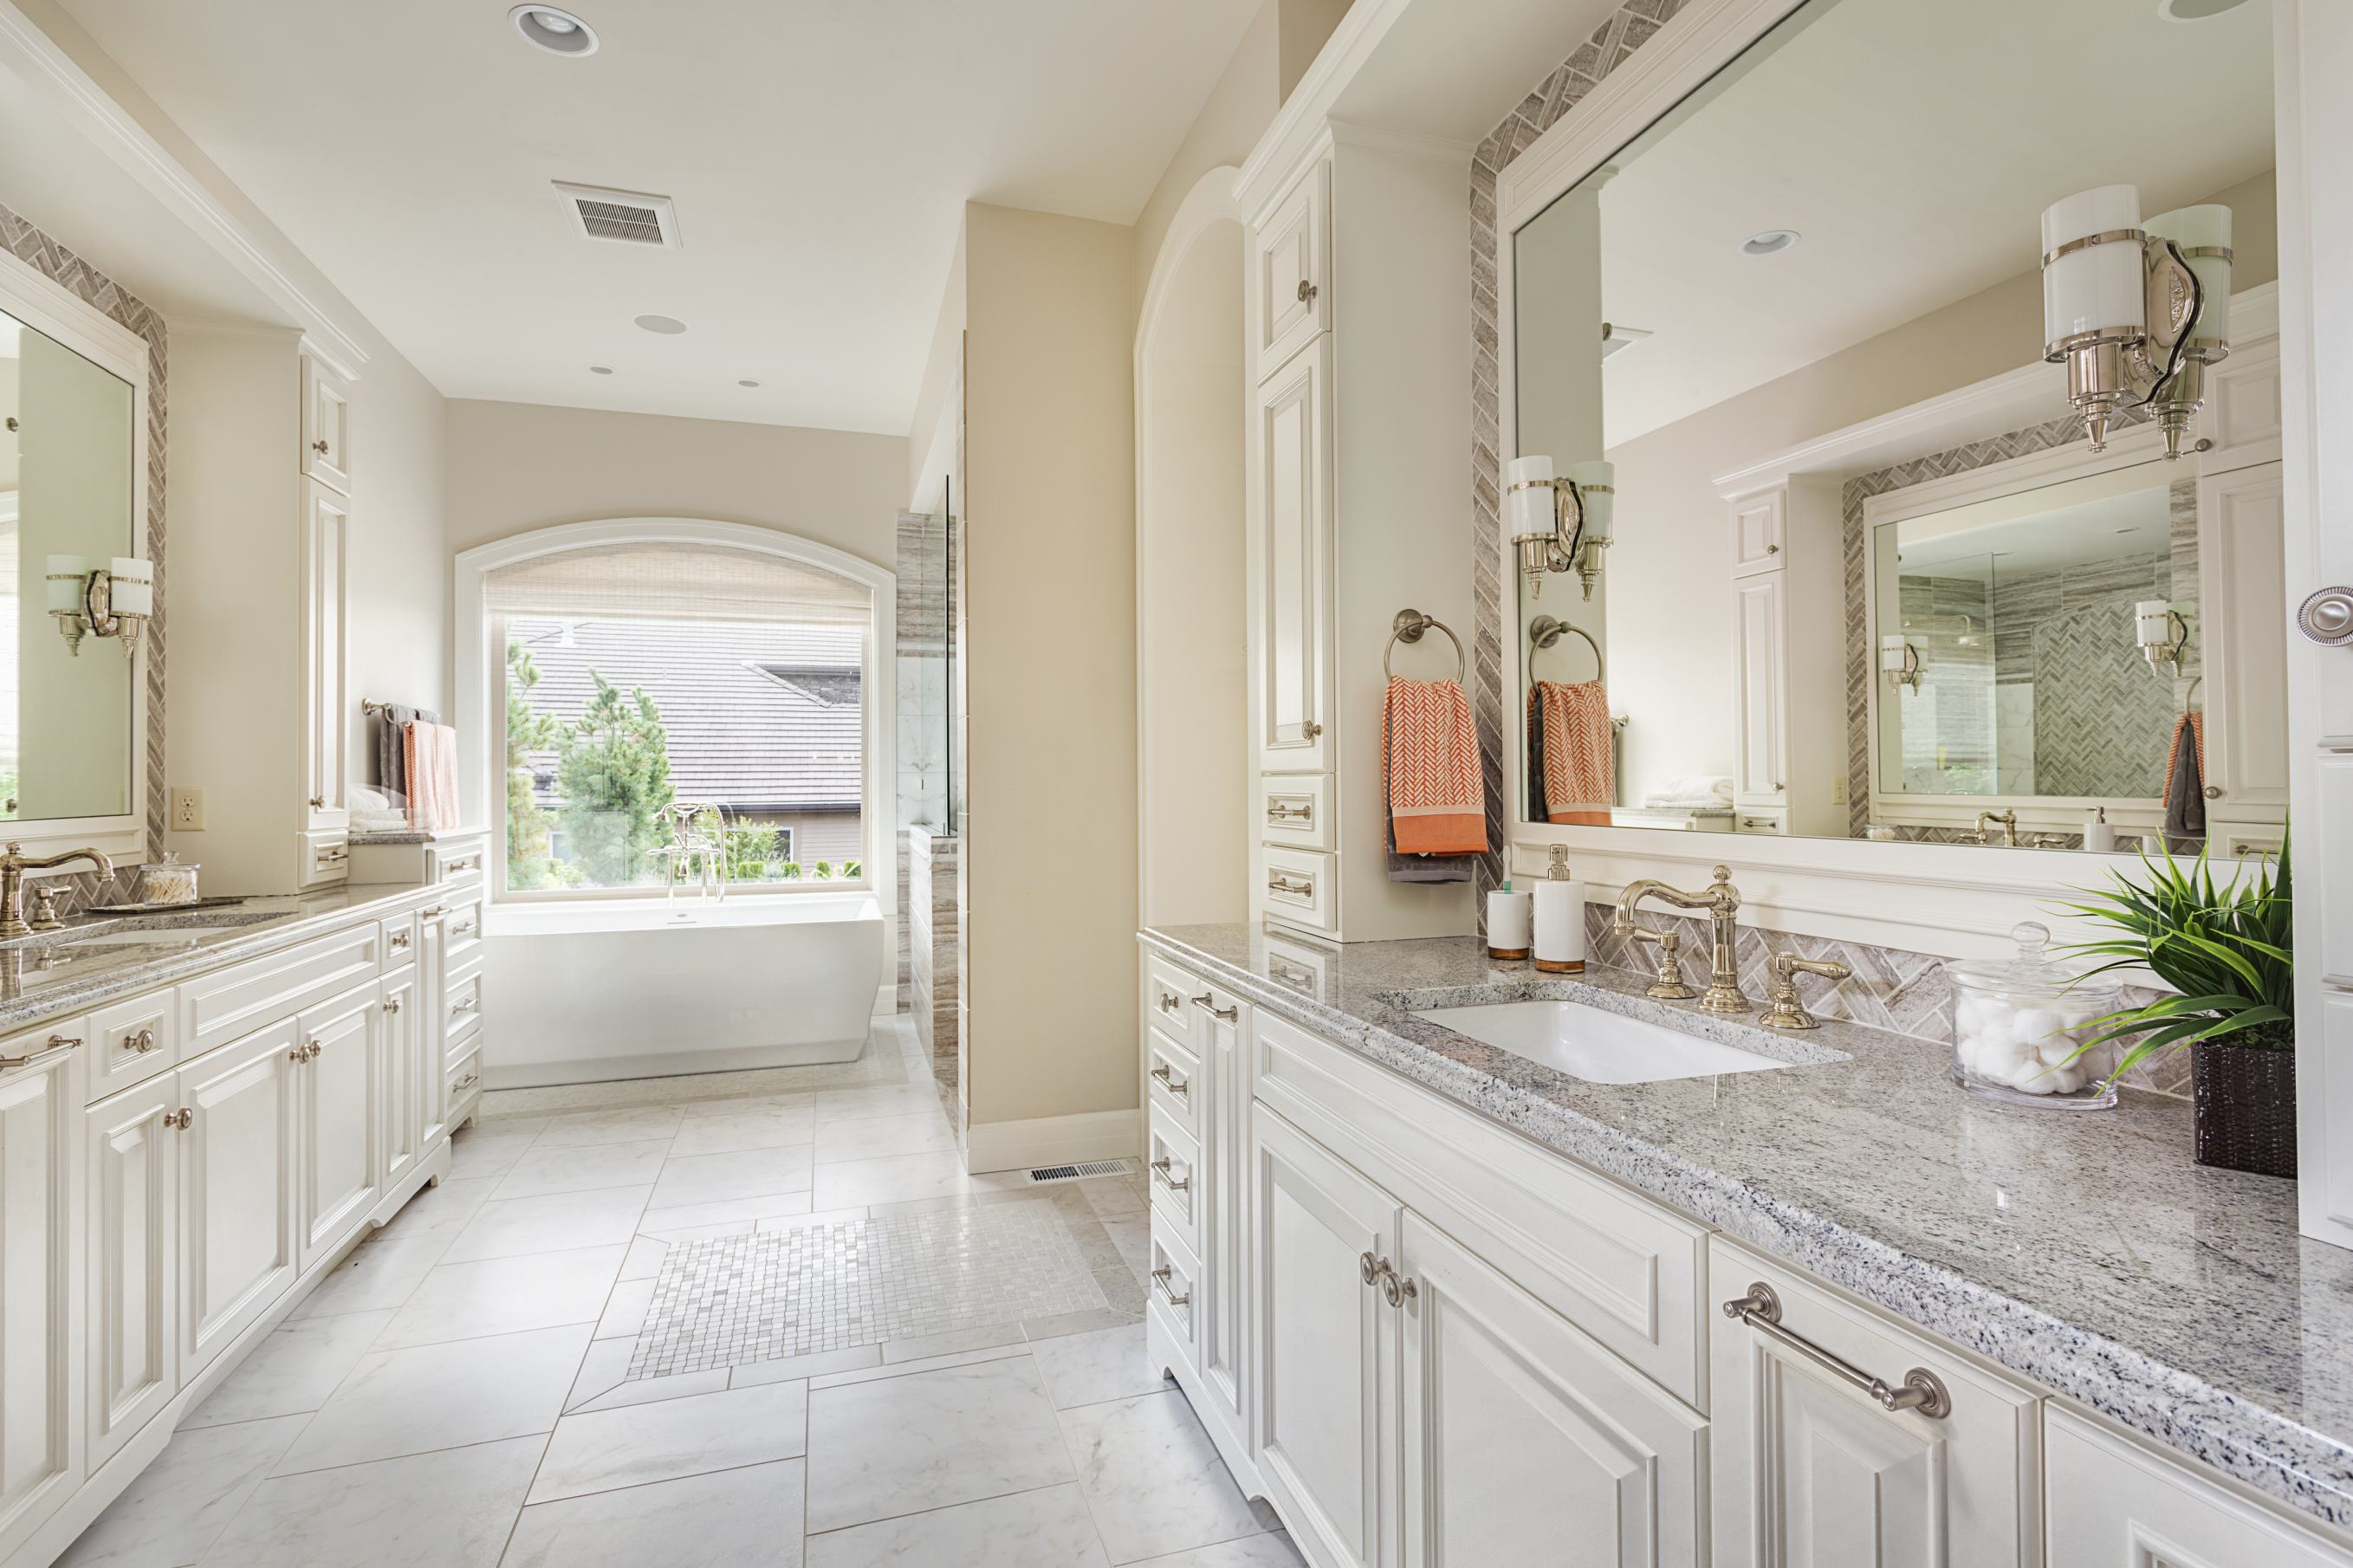 Elite Houston Bathroom Remodeling – Luxury Bathroom Remodeling For Less in Lovely Houston Bathroom Remodeling